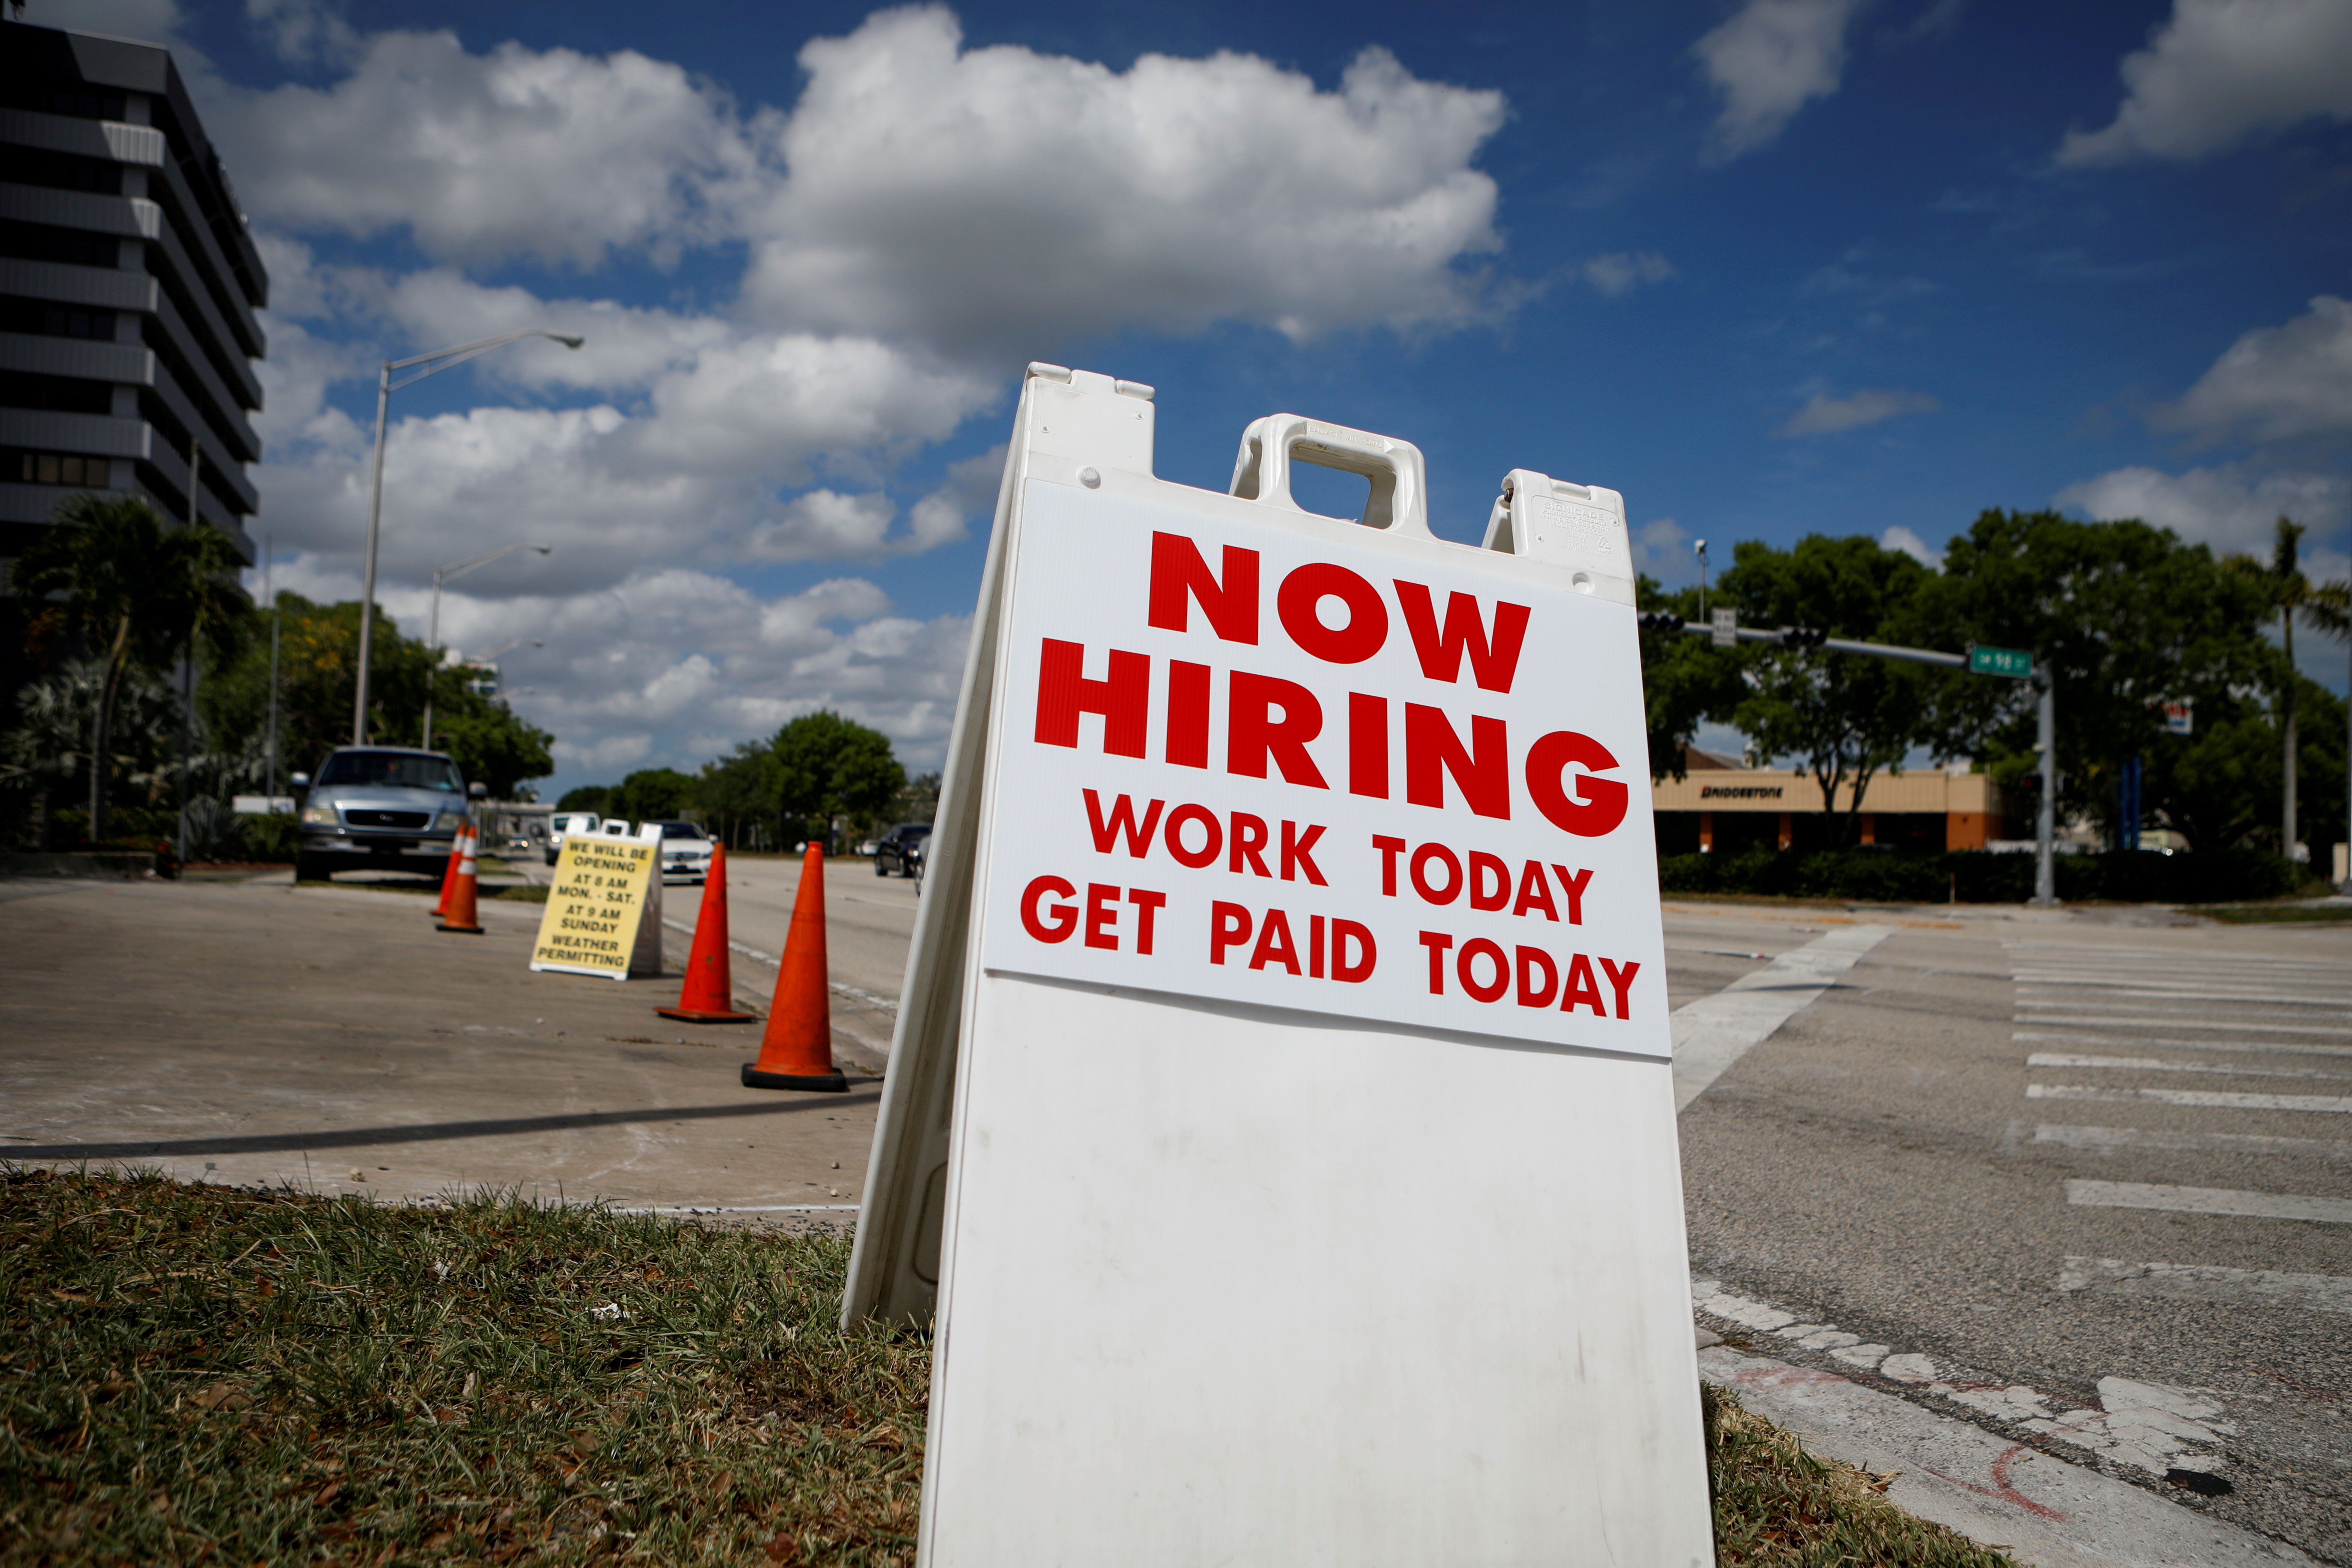 """A """"Now Hiring"""" sign advertising jobs at a hand car wash is seen along a street in Miami, Florida, U.S. May 8, 2020. REUTERS/Marco Bello/File Photo"""